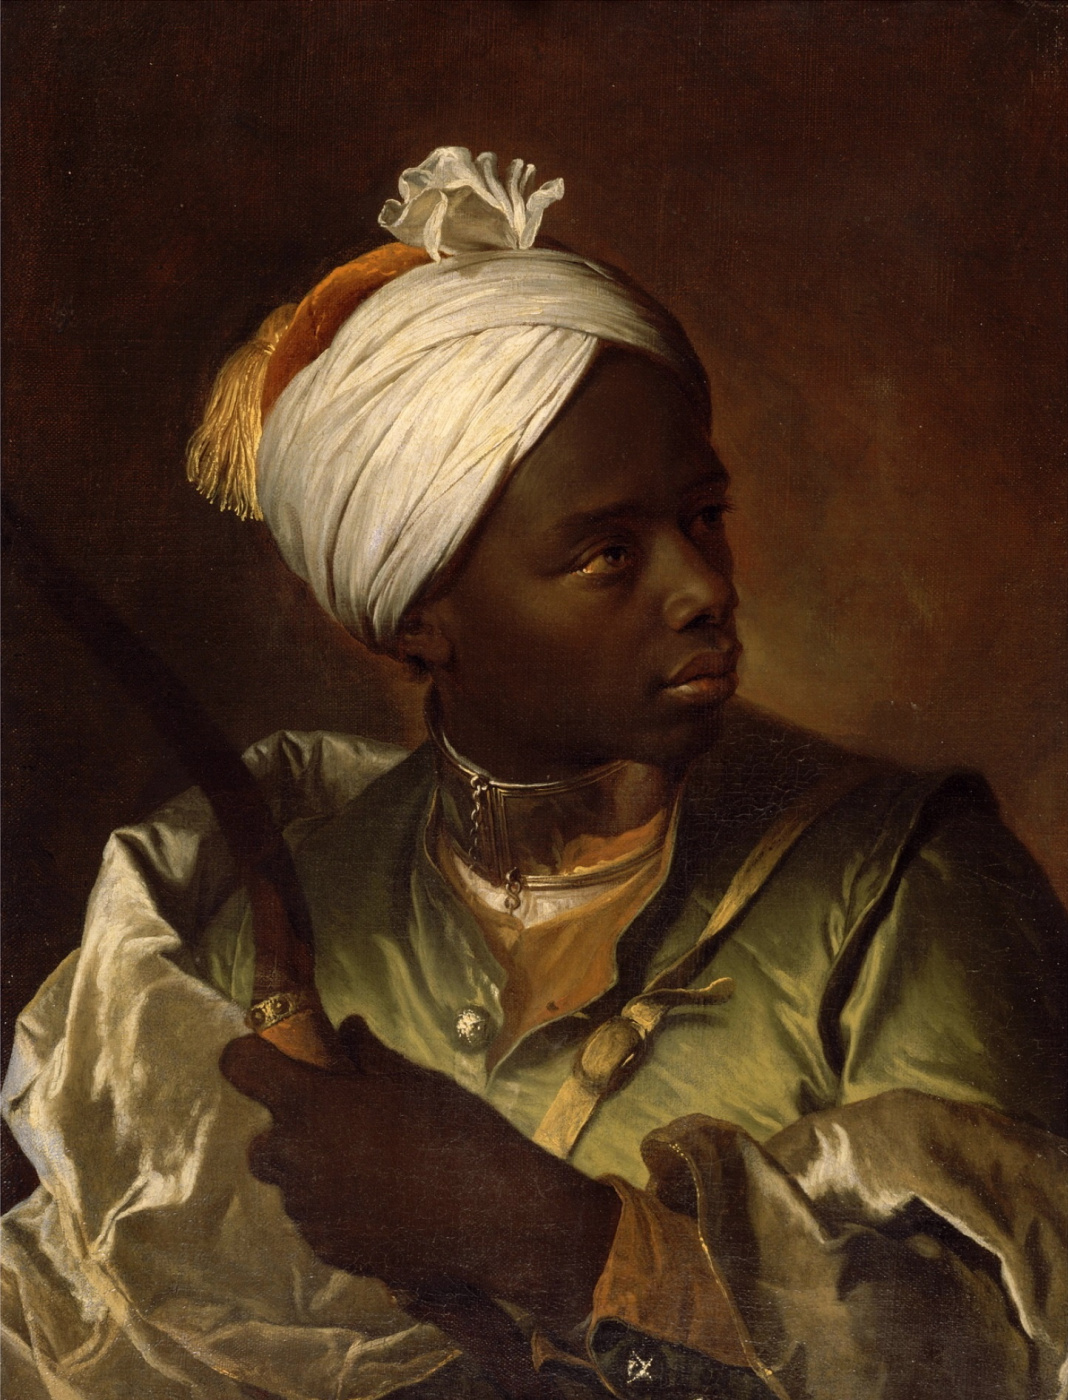 Hyacinth Rigo. Portrait of a dark-skinned young man with a bow